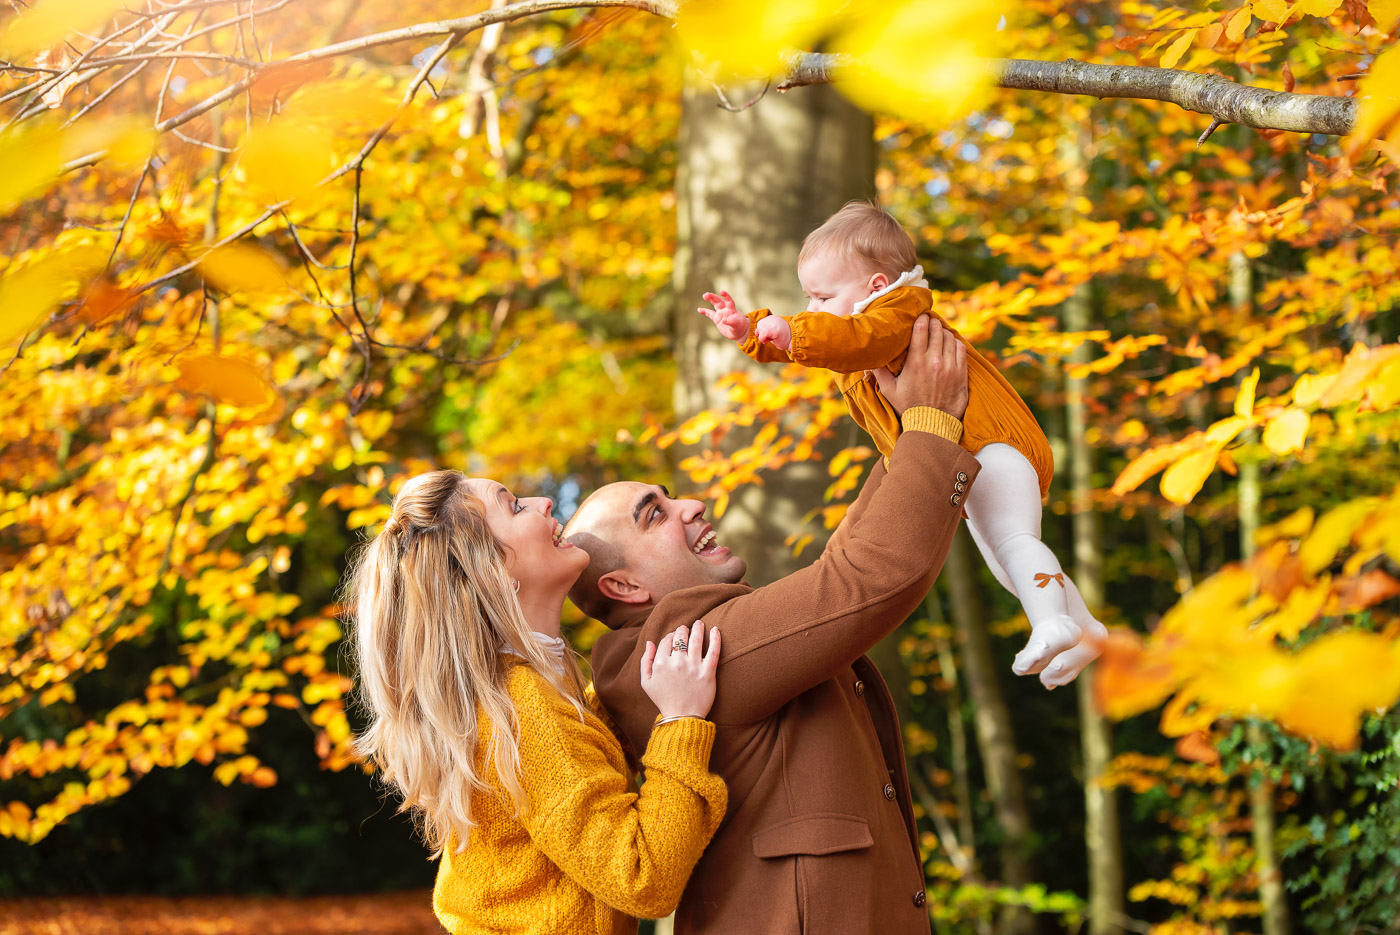 Autumn photo session with matching dressed family and a baby in colourful woods